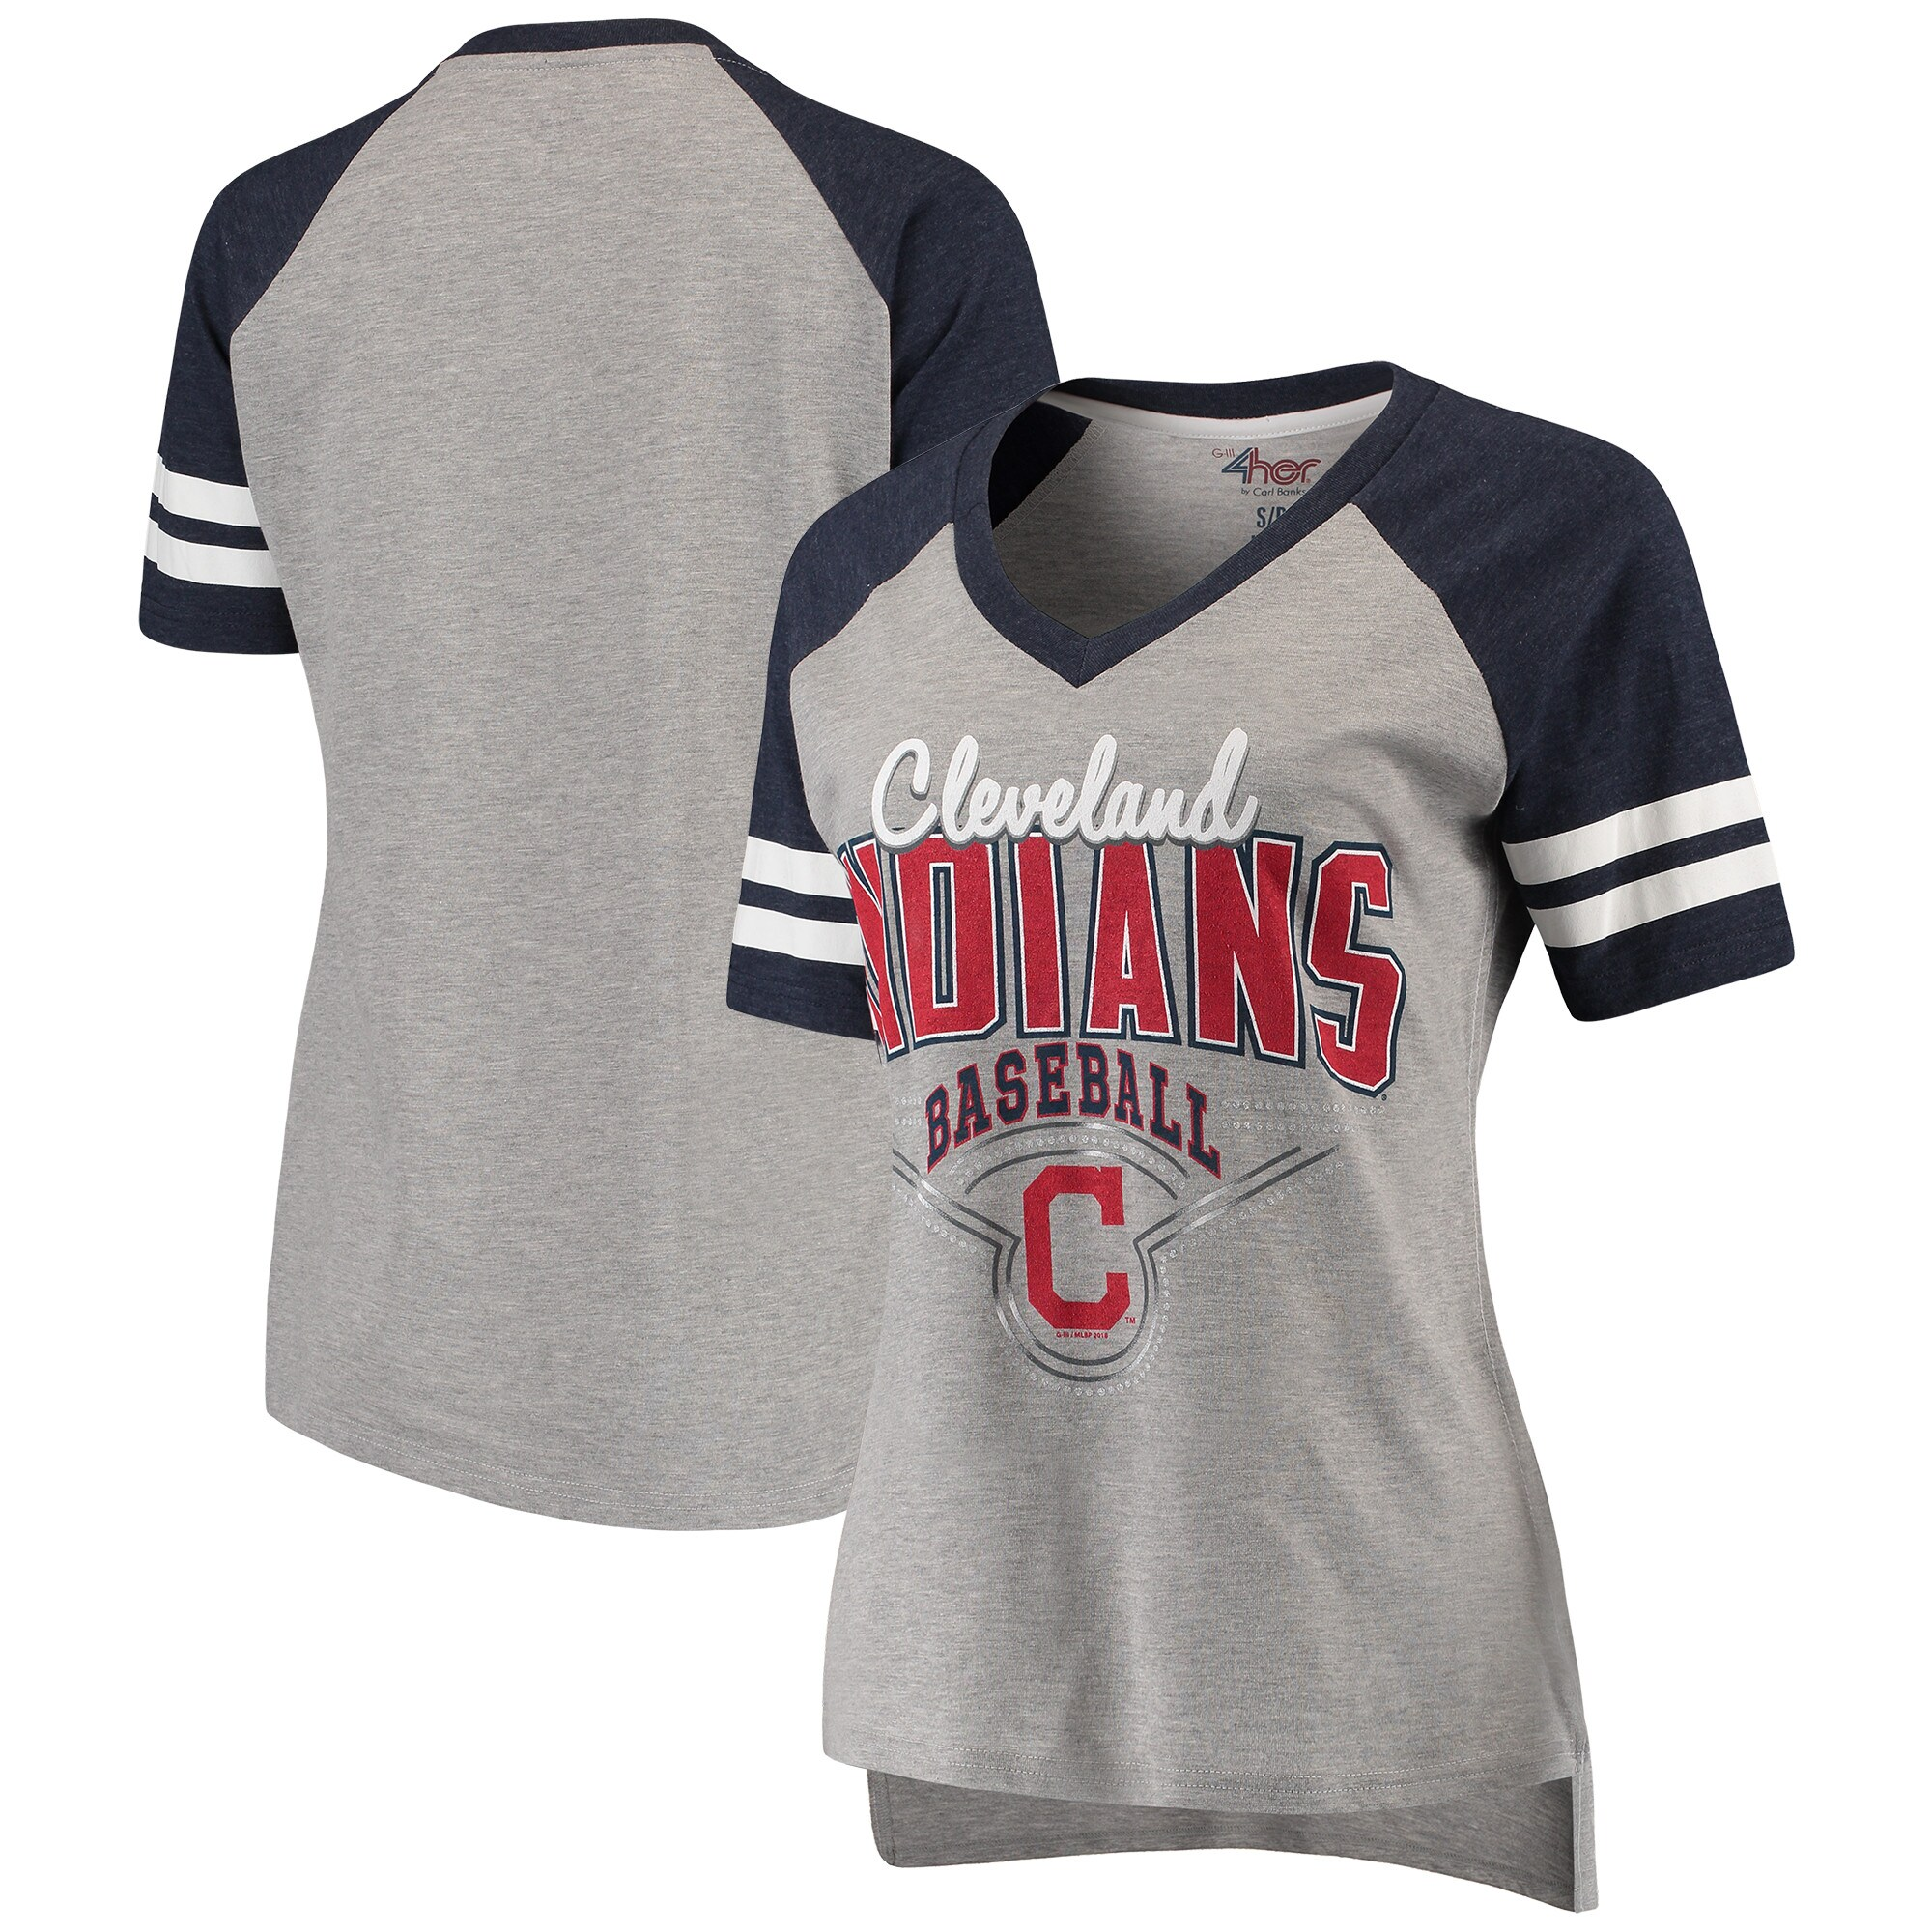 Cleveland Indians G-III 4Her by Carl Banks Women's Goal Line V-Neck T-Shirt - Heathered Gray/Navy